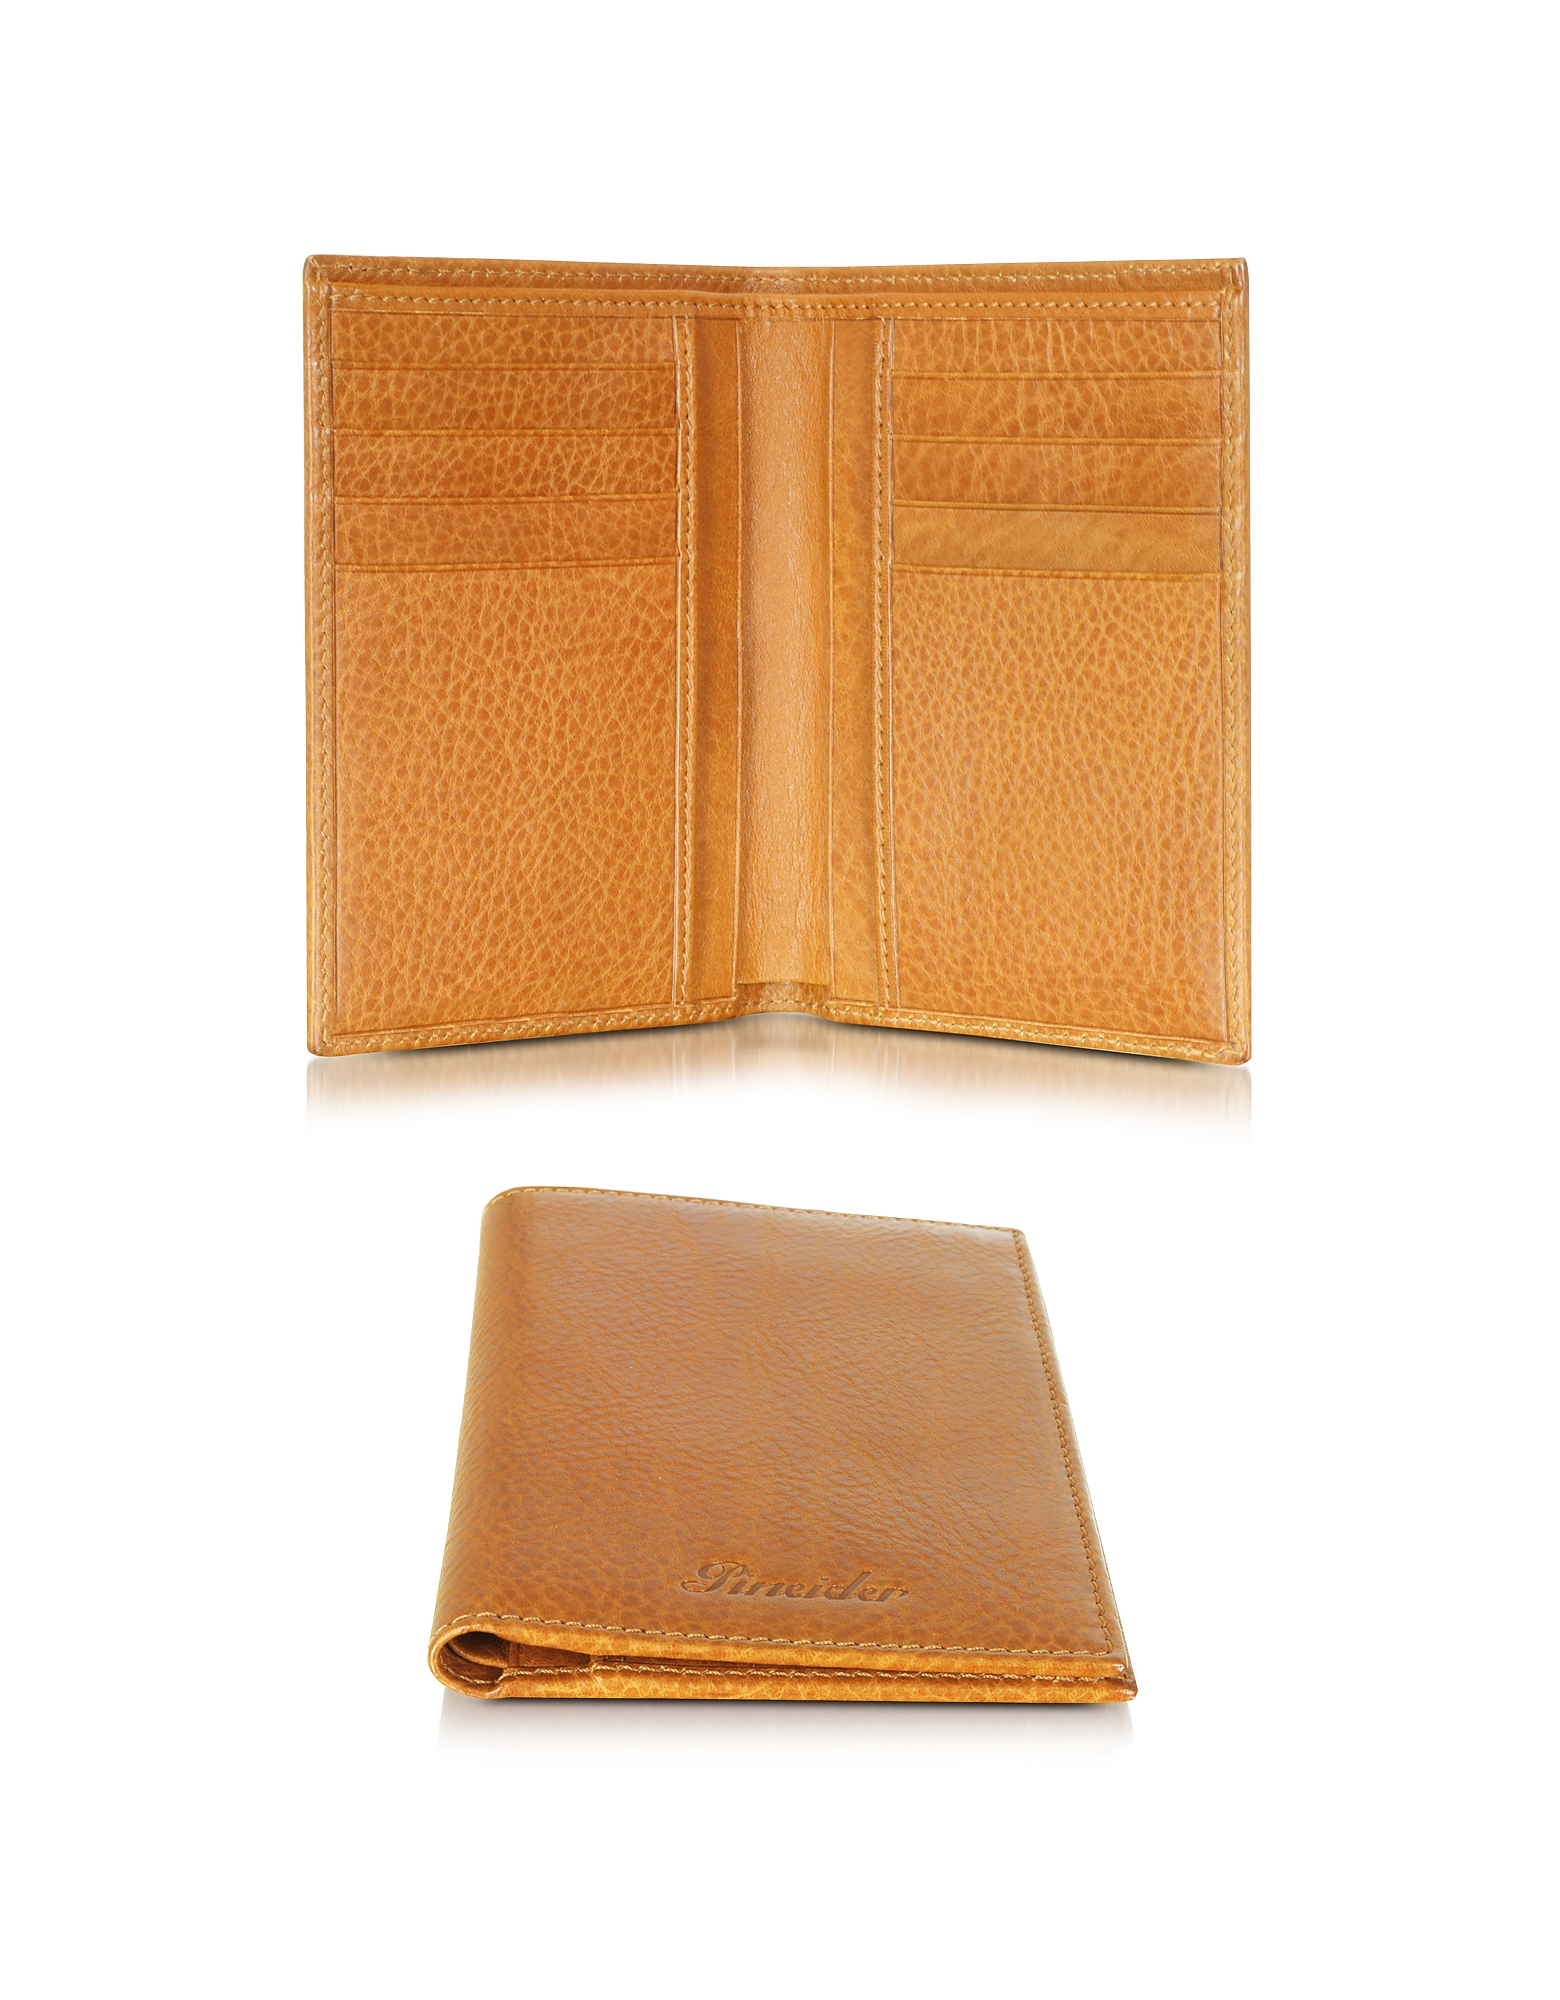 Pineider Wallets, Country Cognac Leather Vertical Wallet